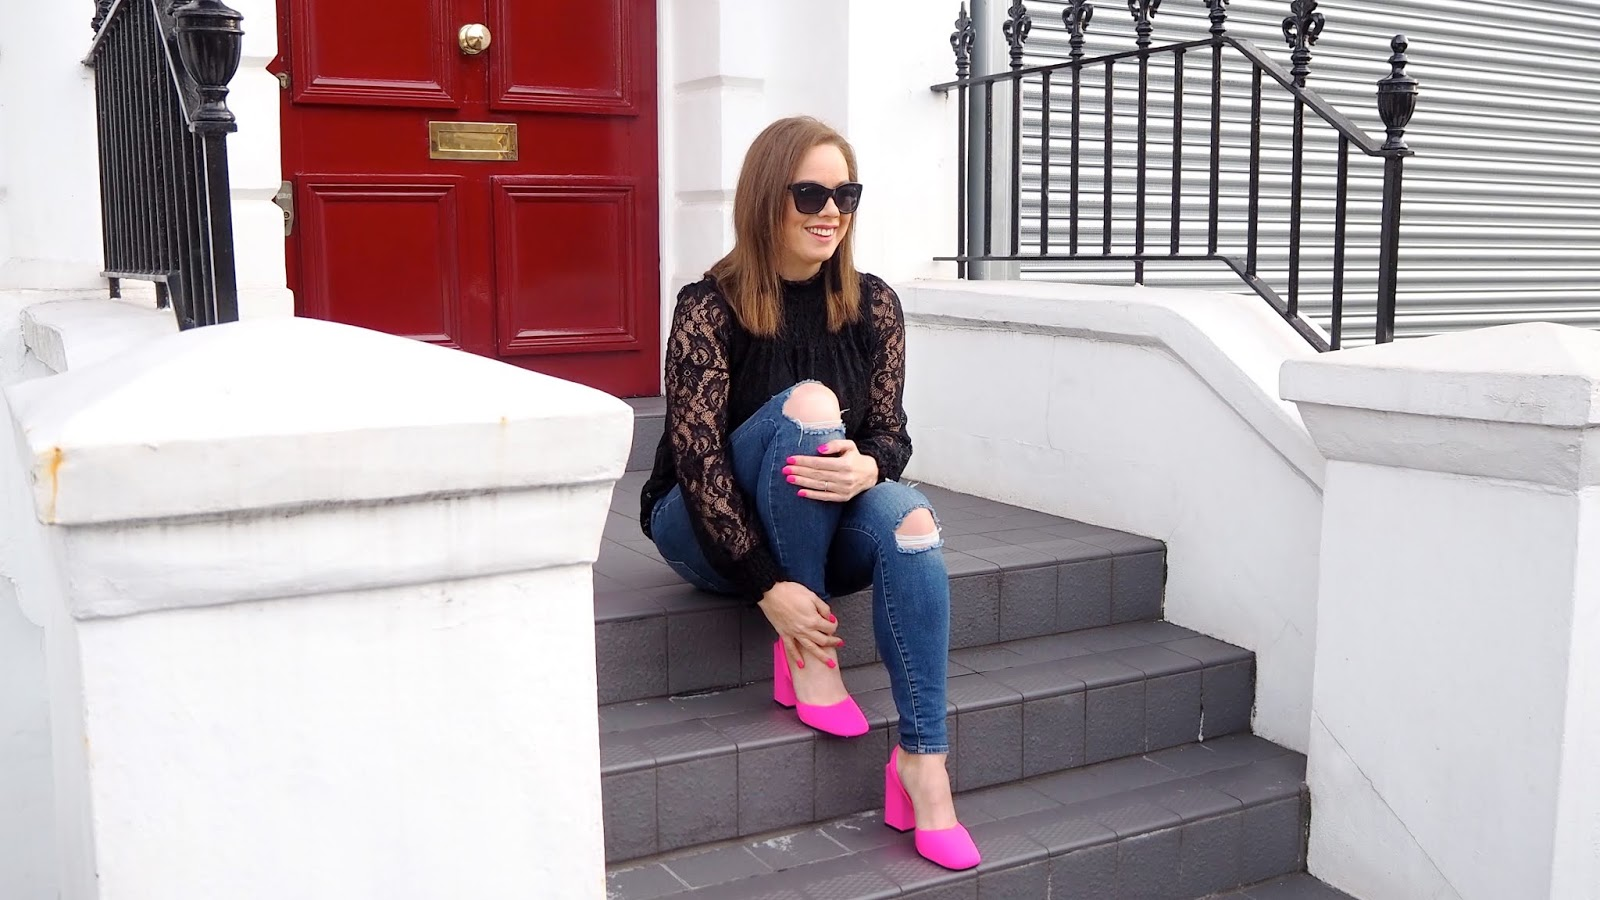 Neon pink slingback heels and neon pink nails